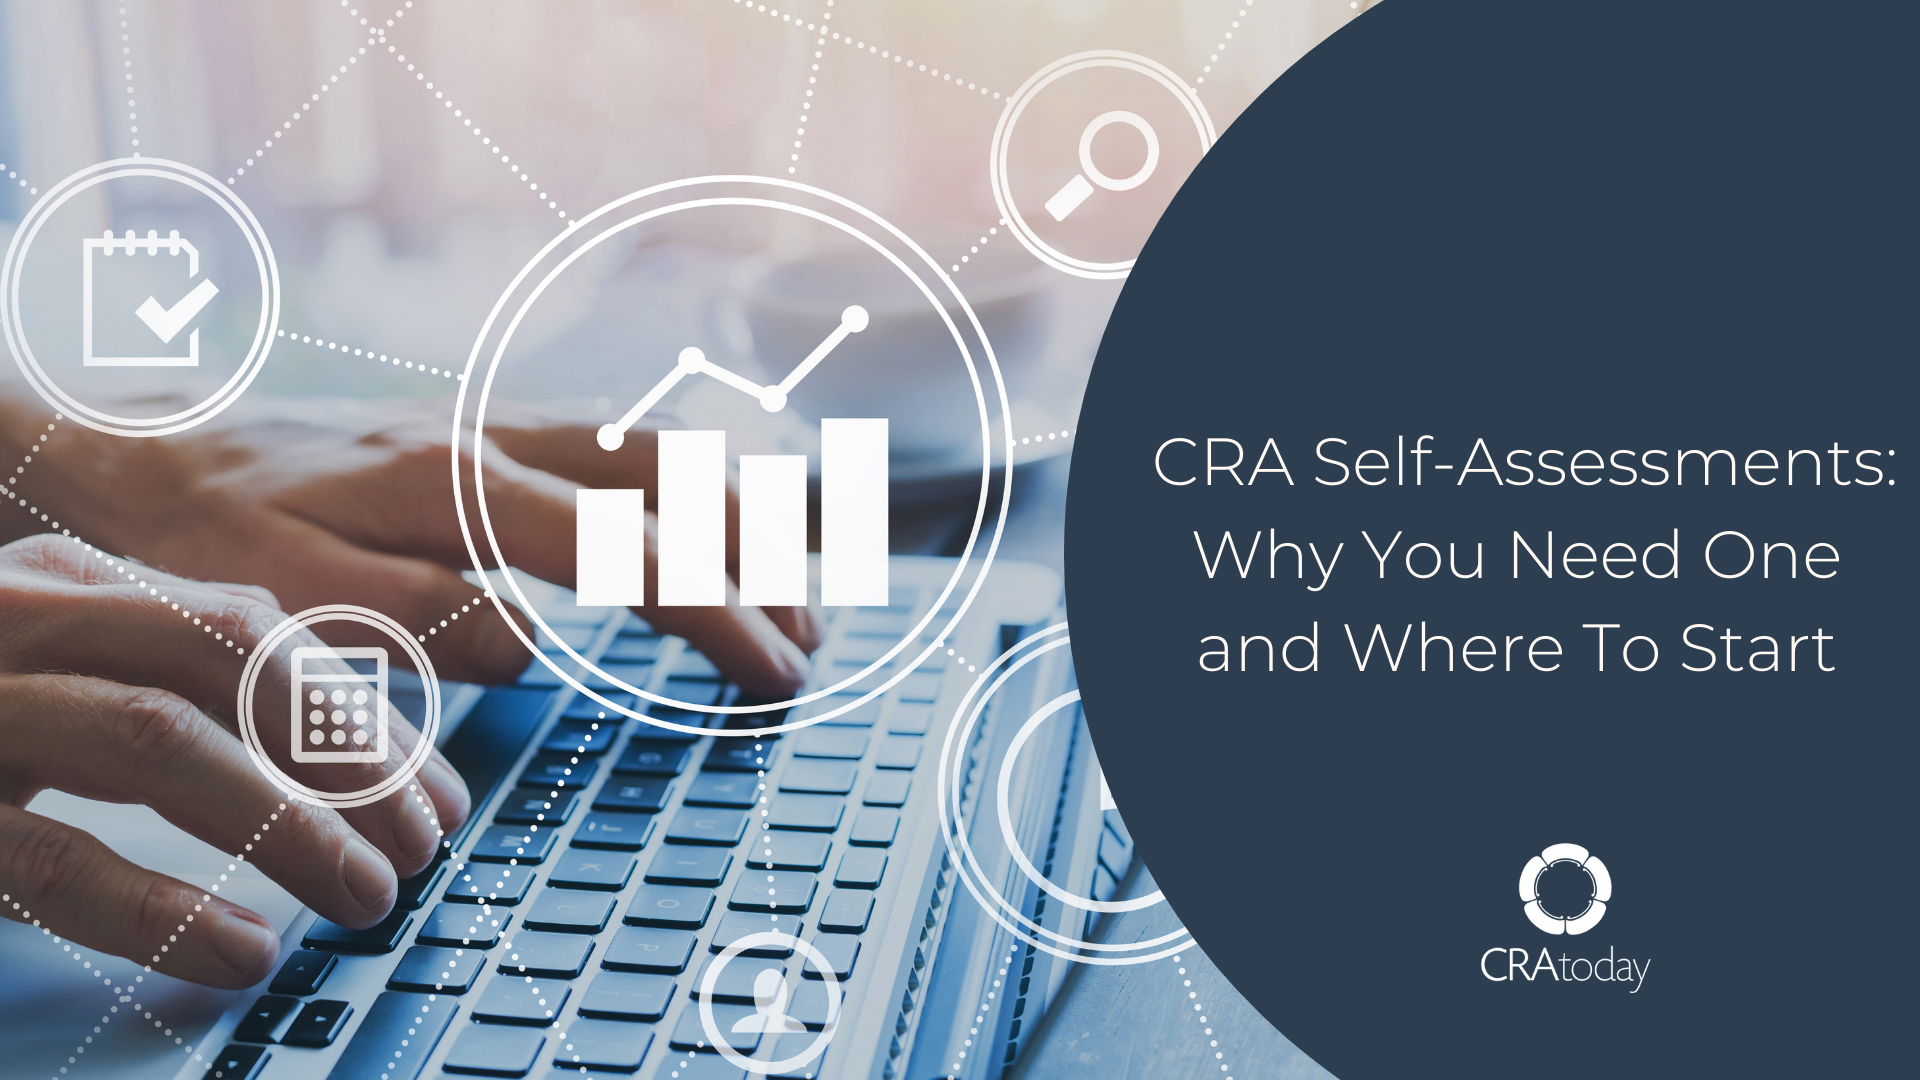 CRA Self-Assessments: Why You Need One and Where To Start